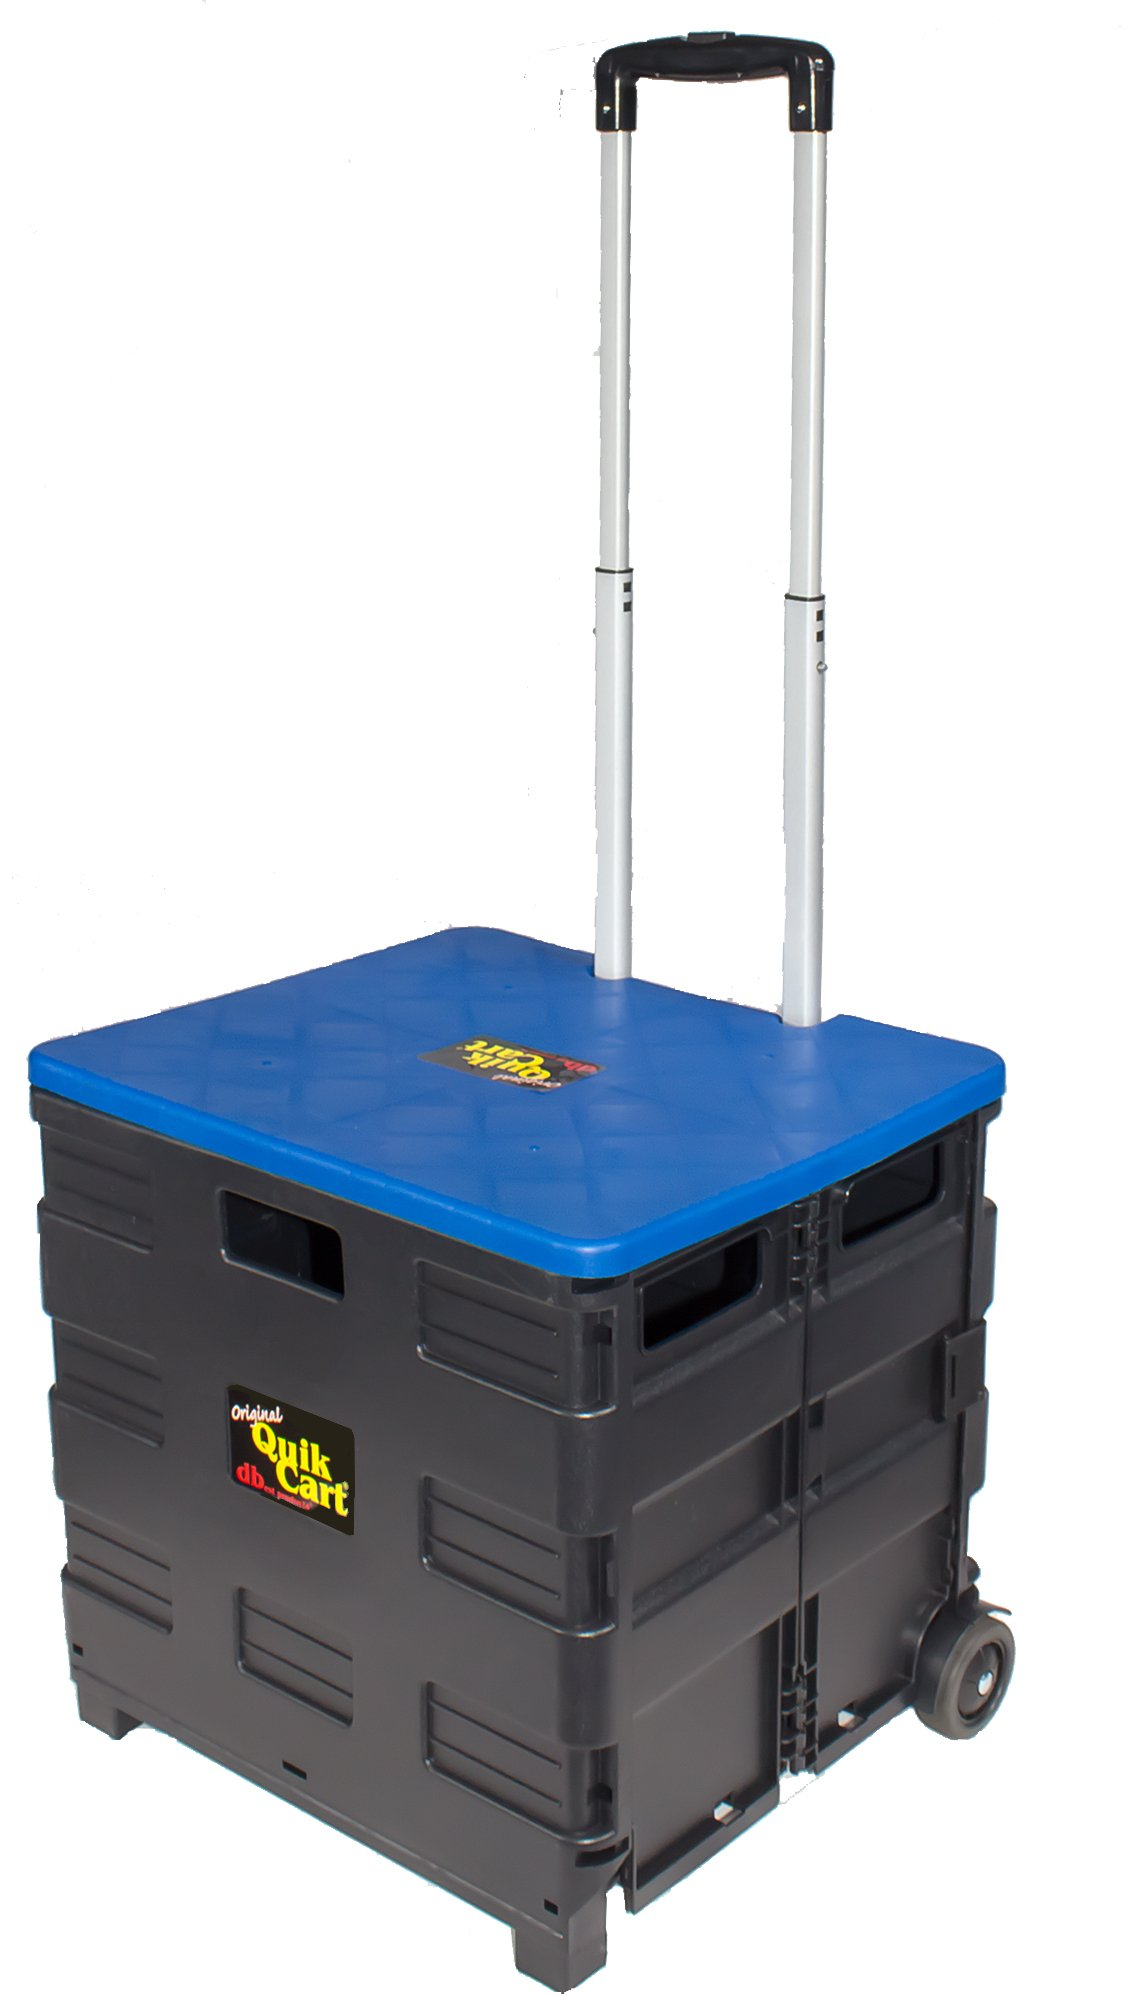 dbest products Quik Cart two Wheeled Collapsible Handcart with Blue Lid Rolling Utility with Seat Heavy Duty Lightweight by dbest products